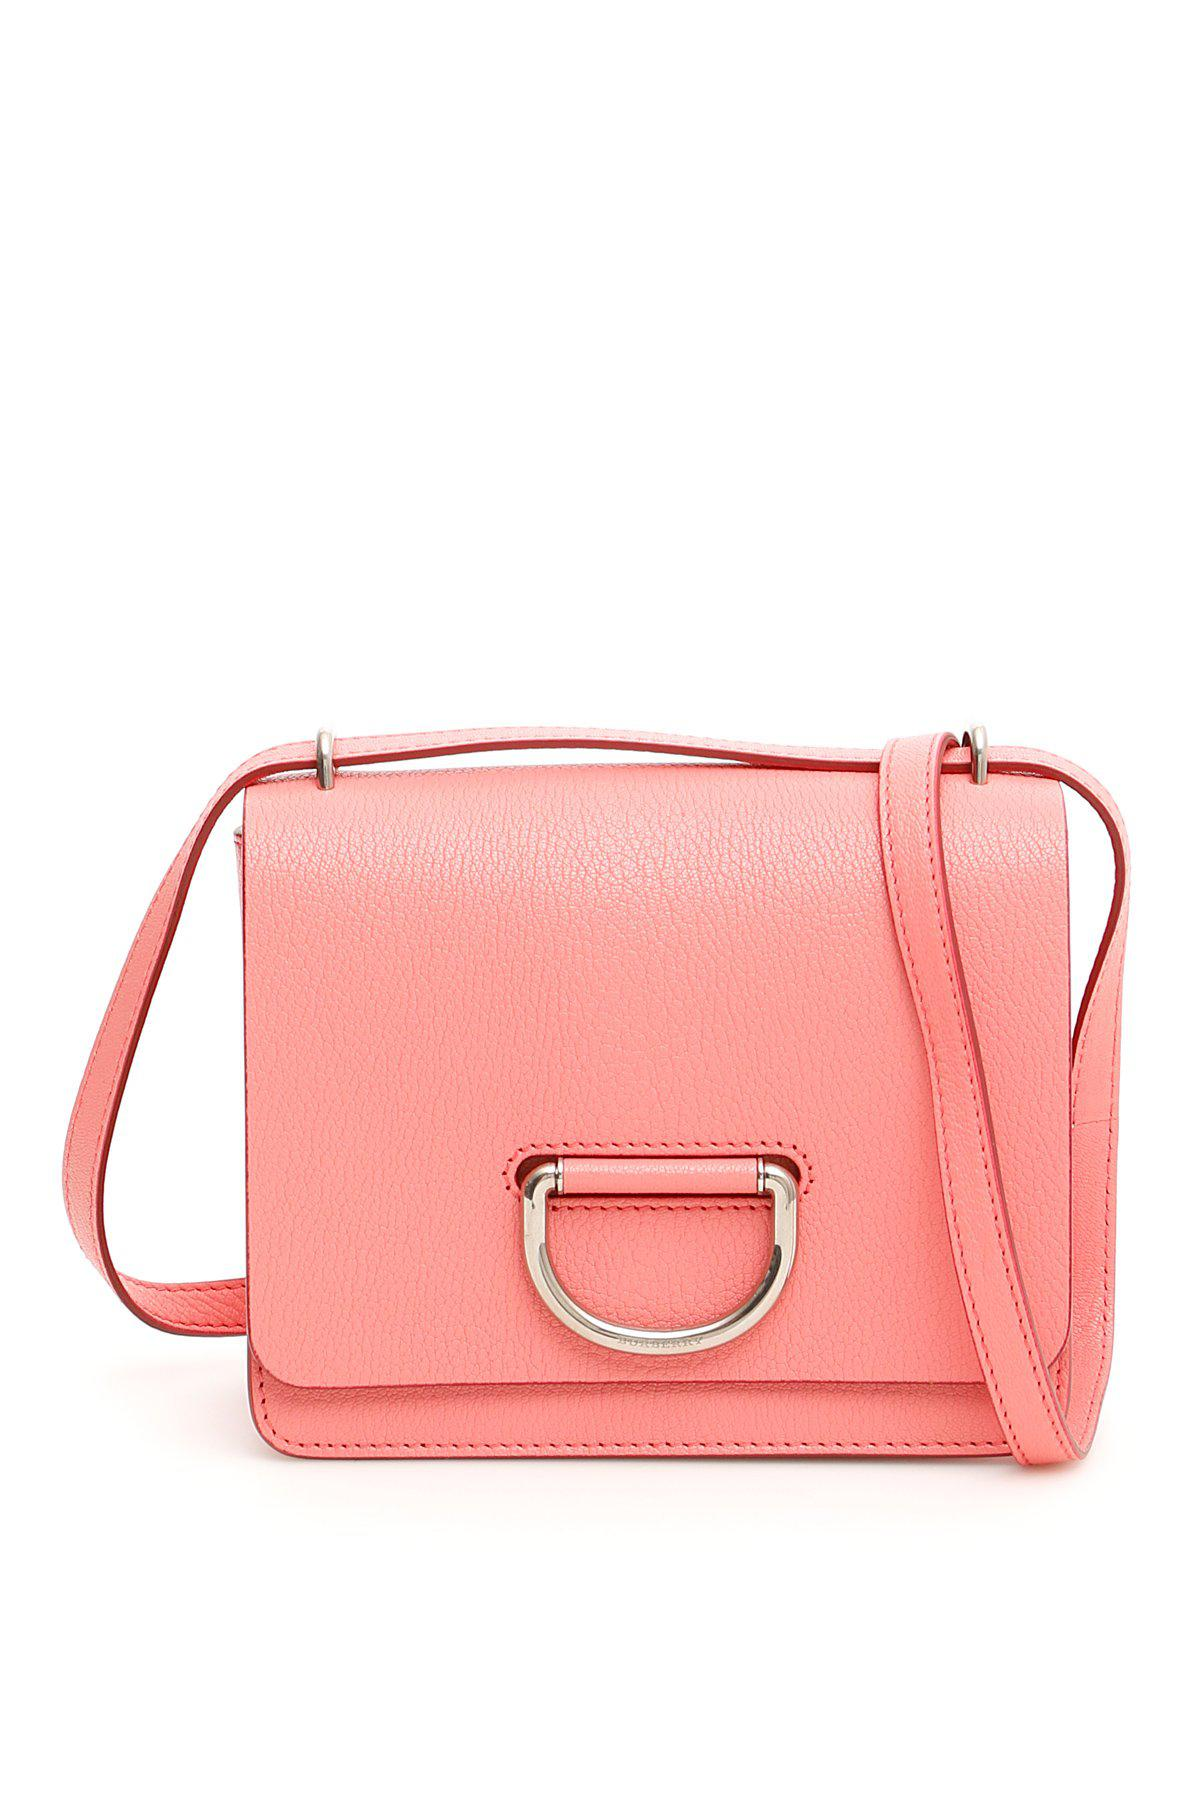 c3ba5965bdd4 Lyst - Burberry Small D Ring Crossbody Bag in Pink